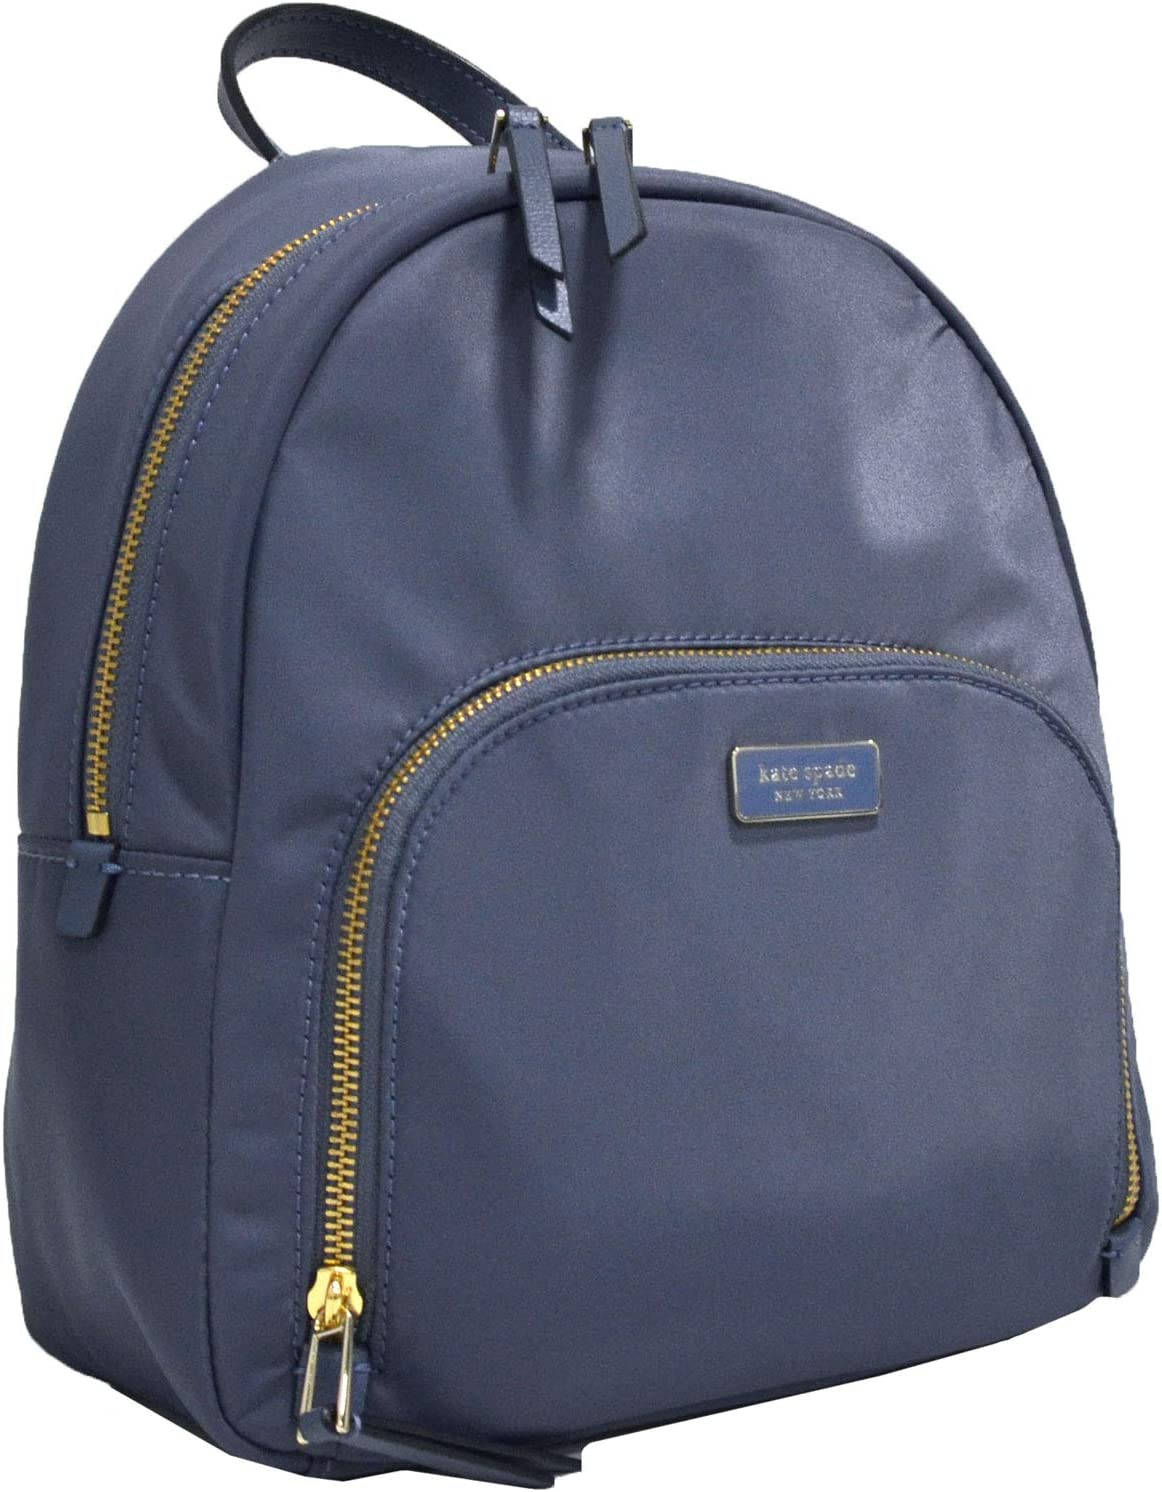 Kate Spade New York Dawn Medium Backpack (Consell Blue)